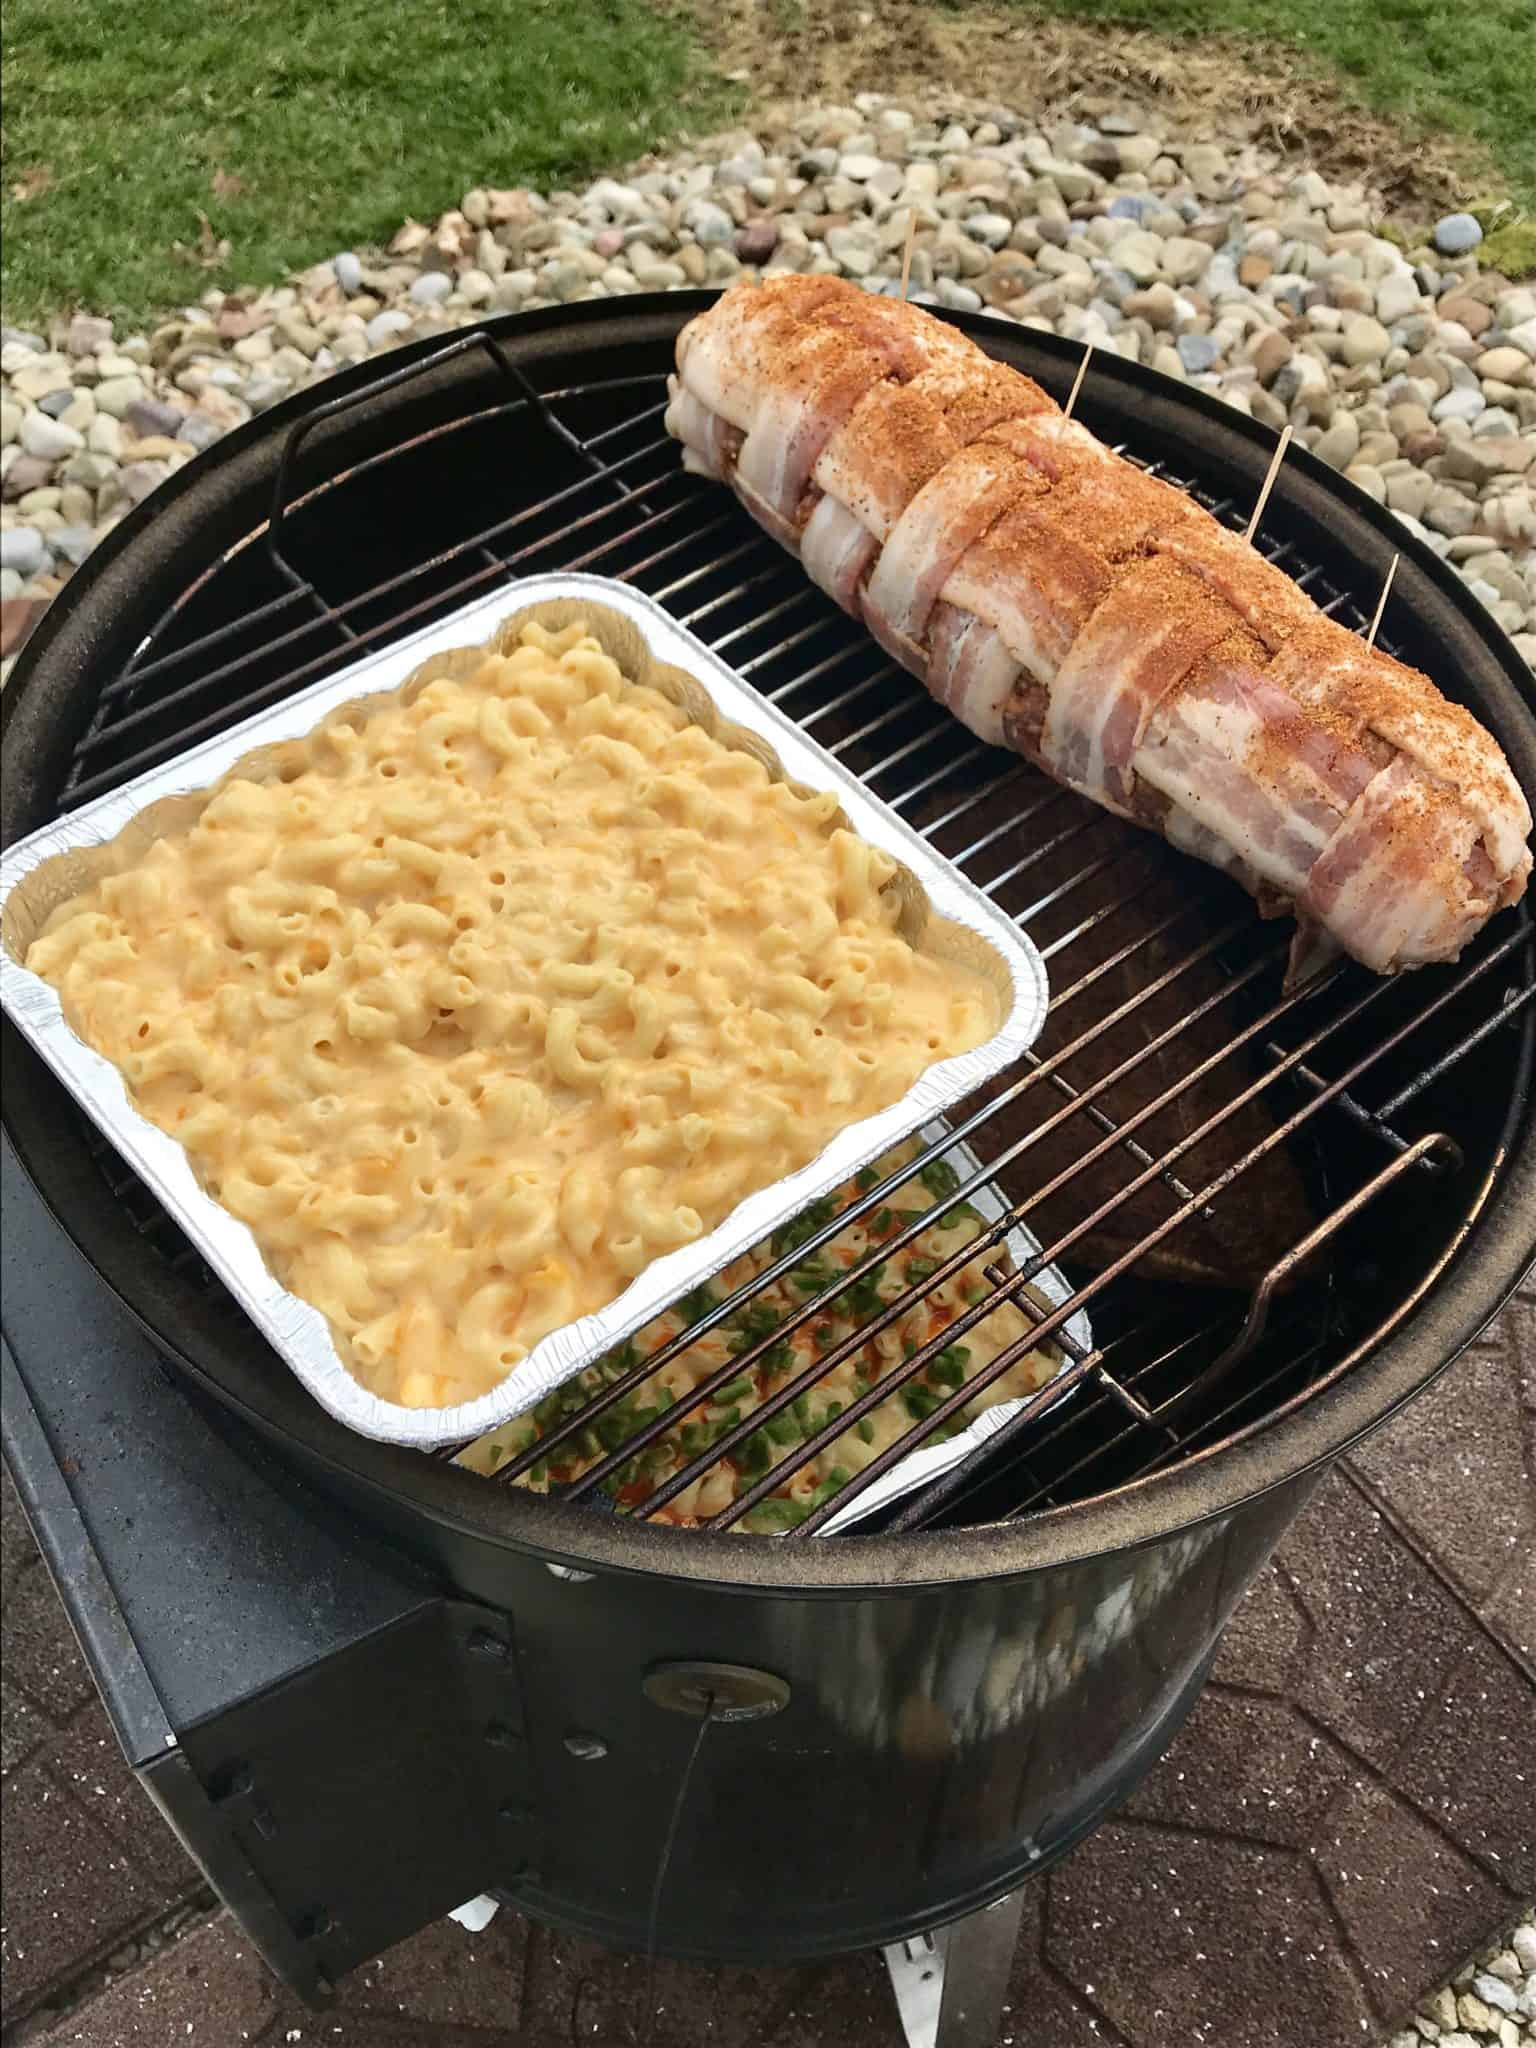 Bacon explosion on weber grill next to pan of smoked Mac and cheese